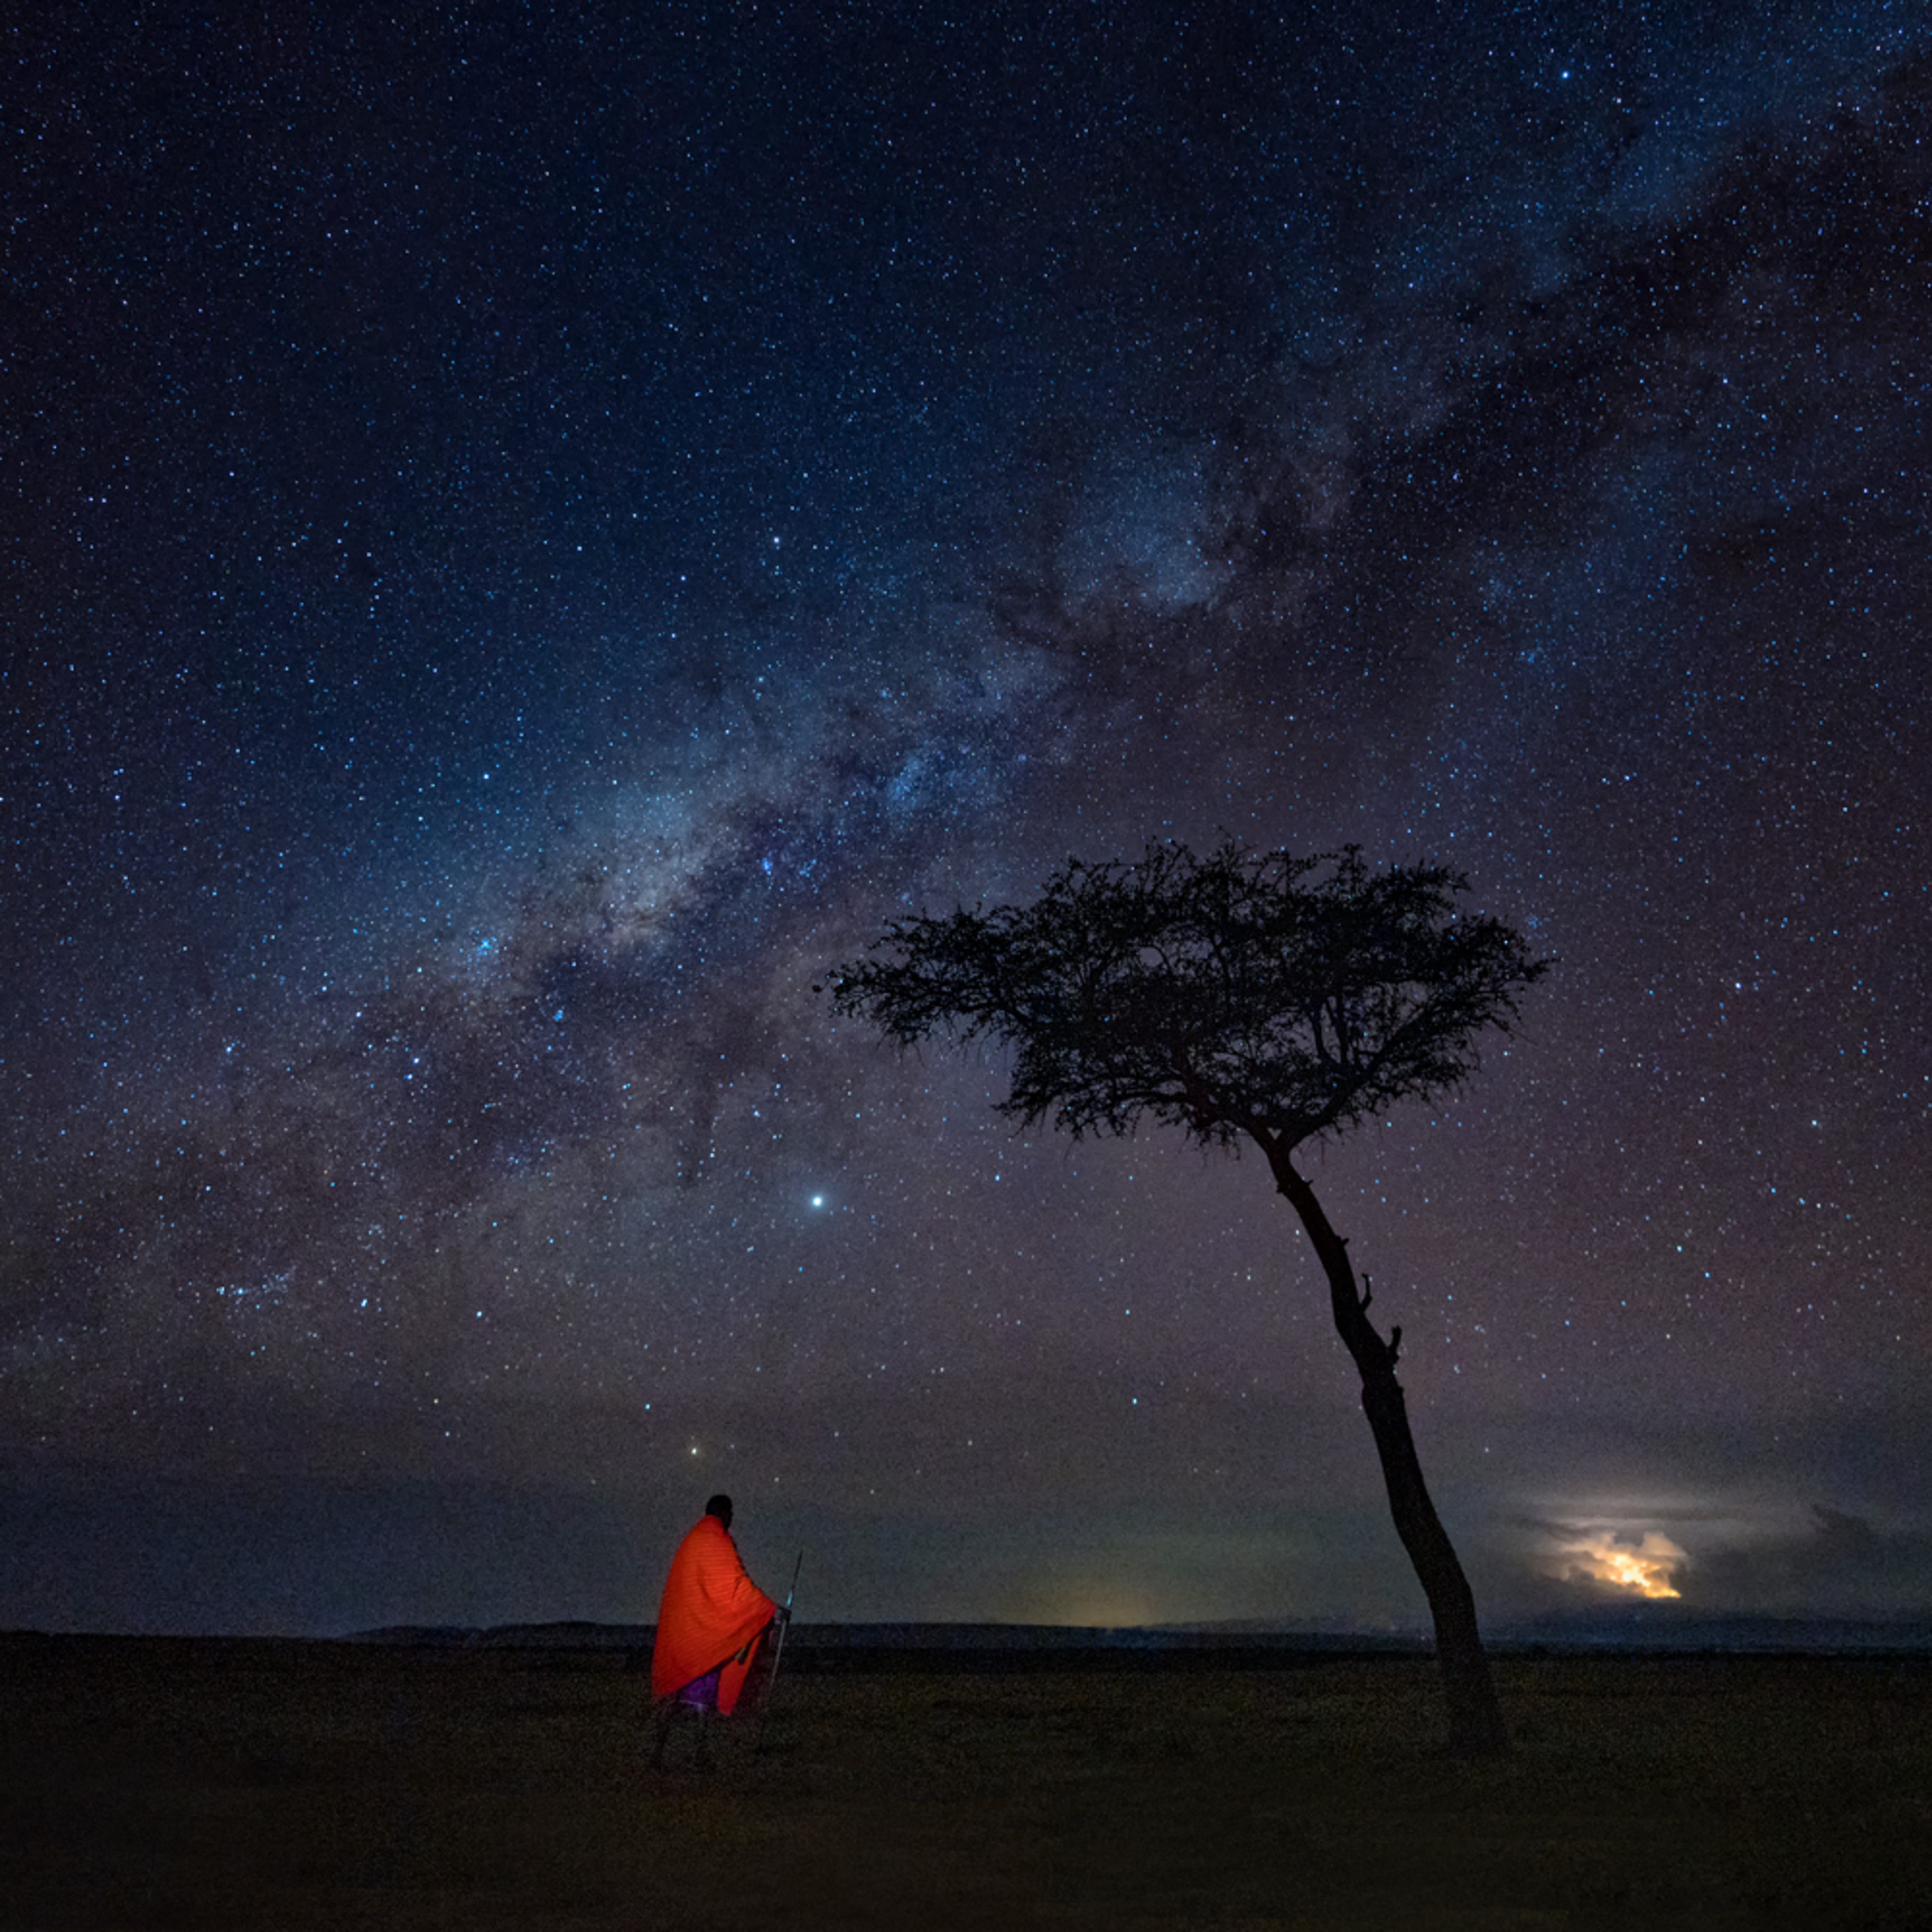 Milky way over the maasai mara wkeb50